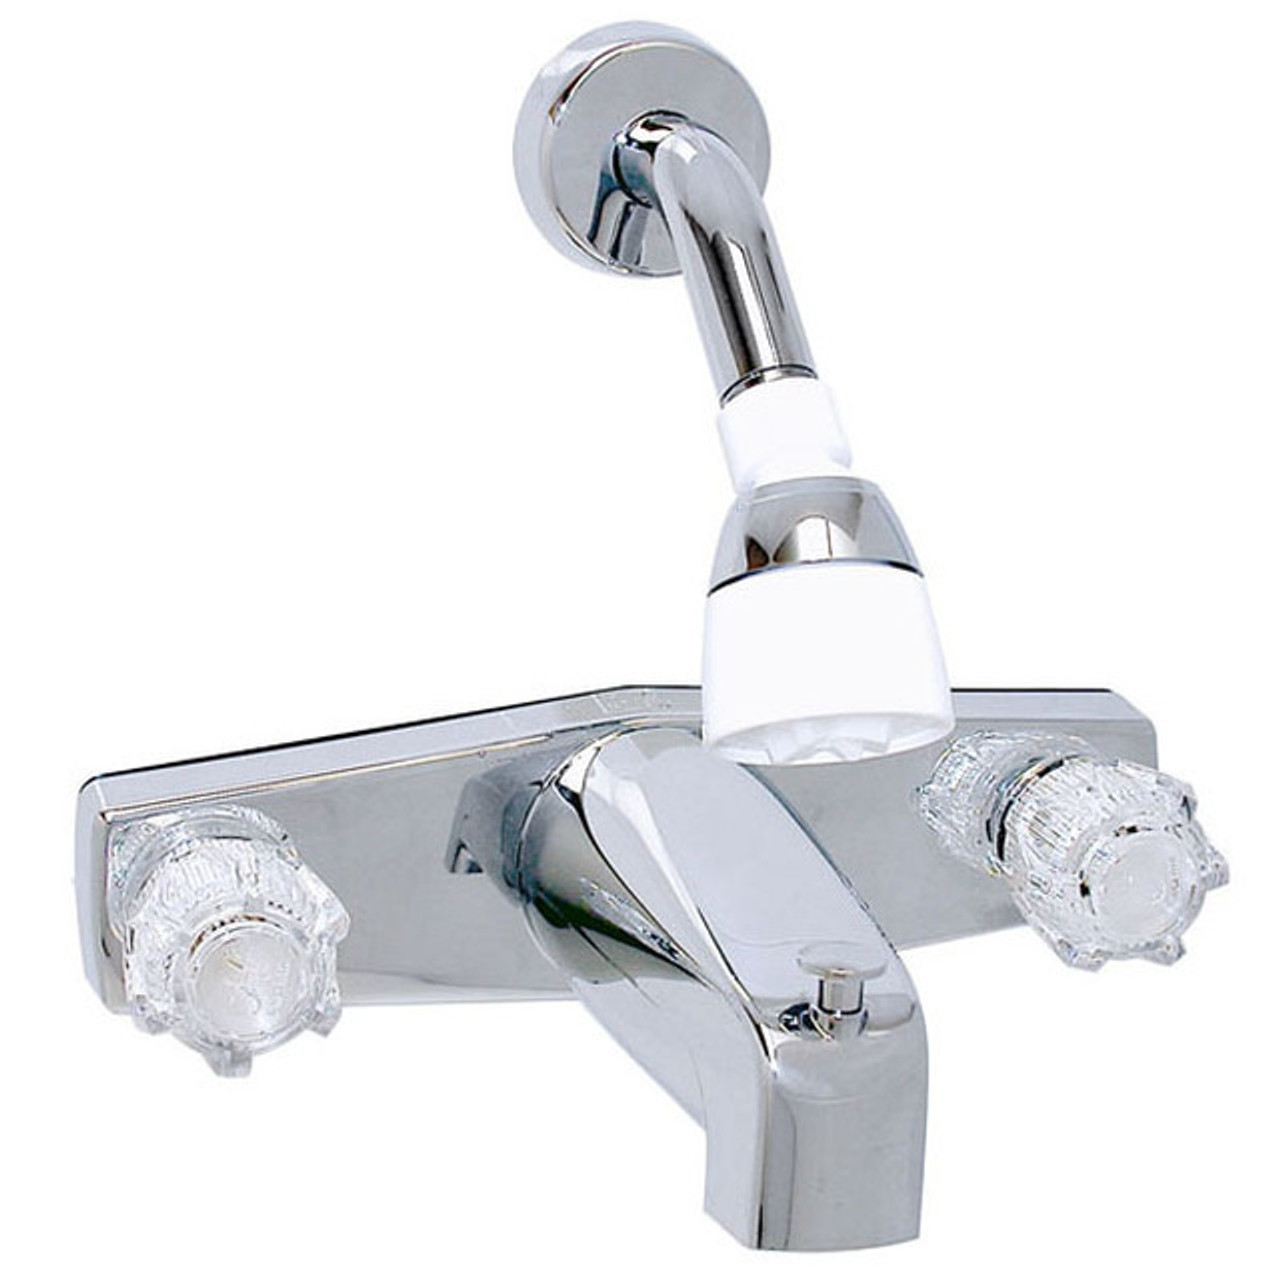 Shower Faucets & Shower Heads